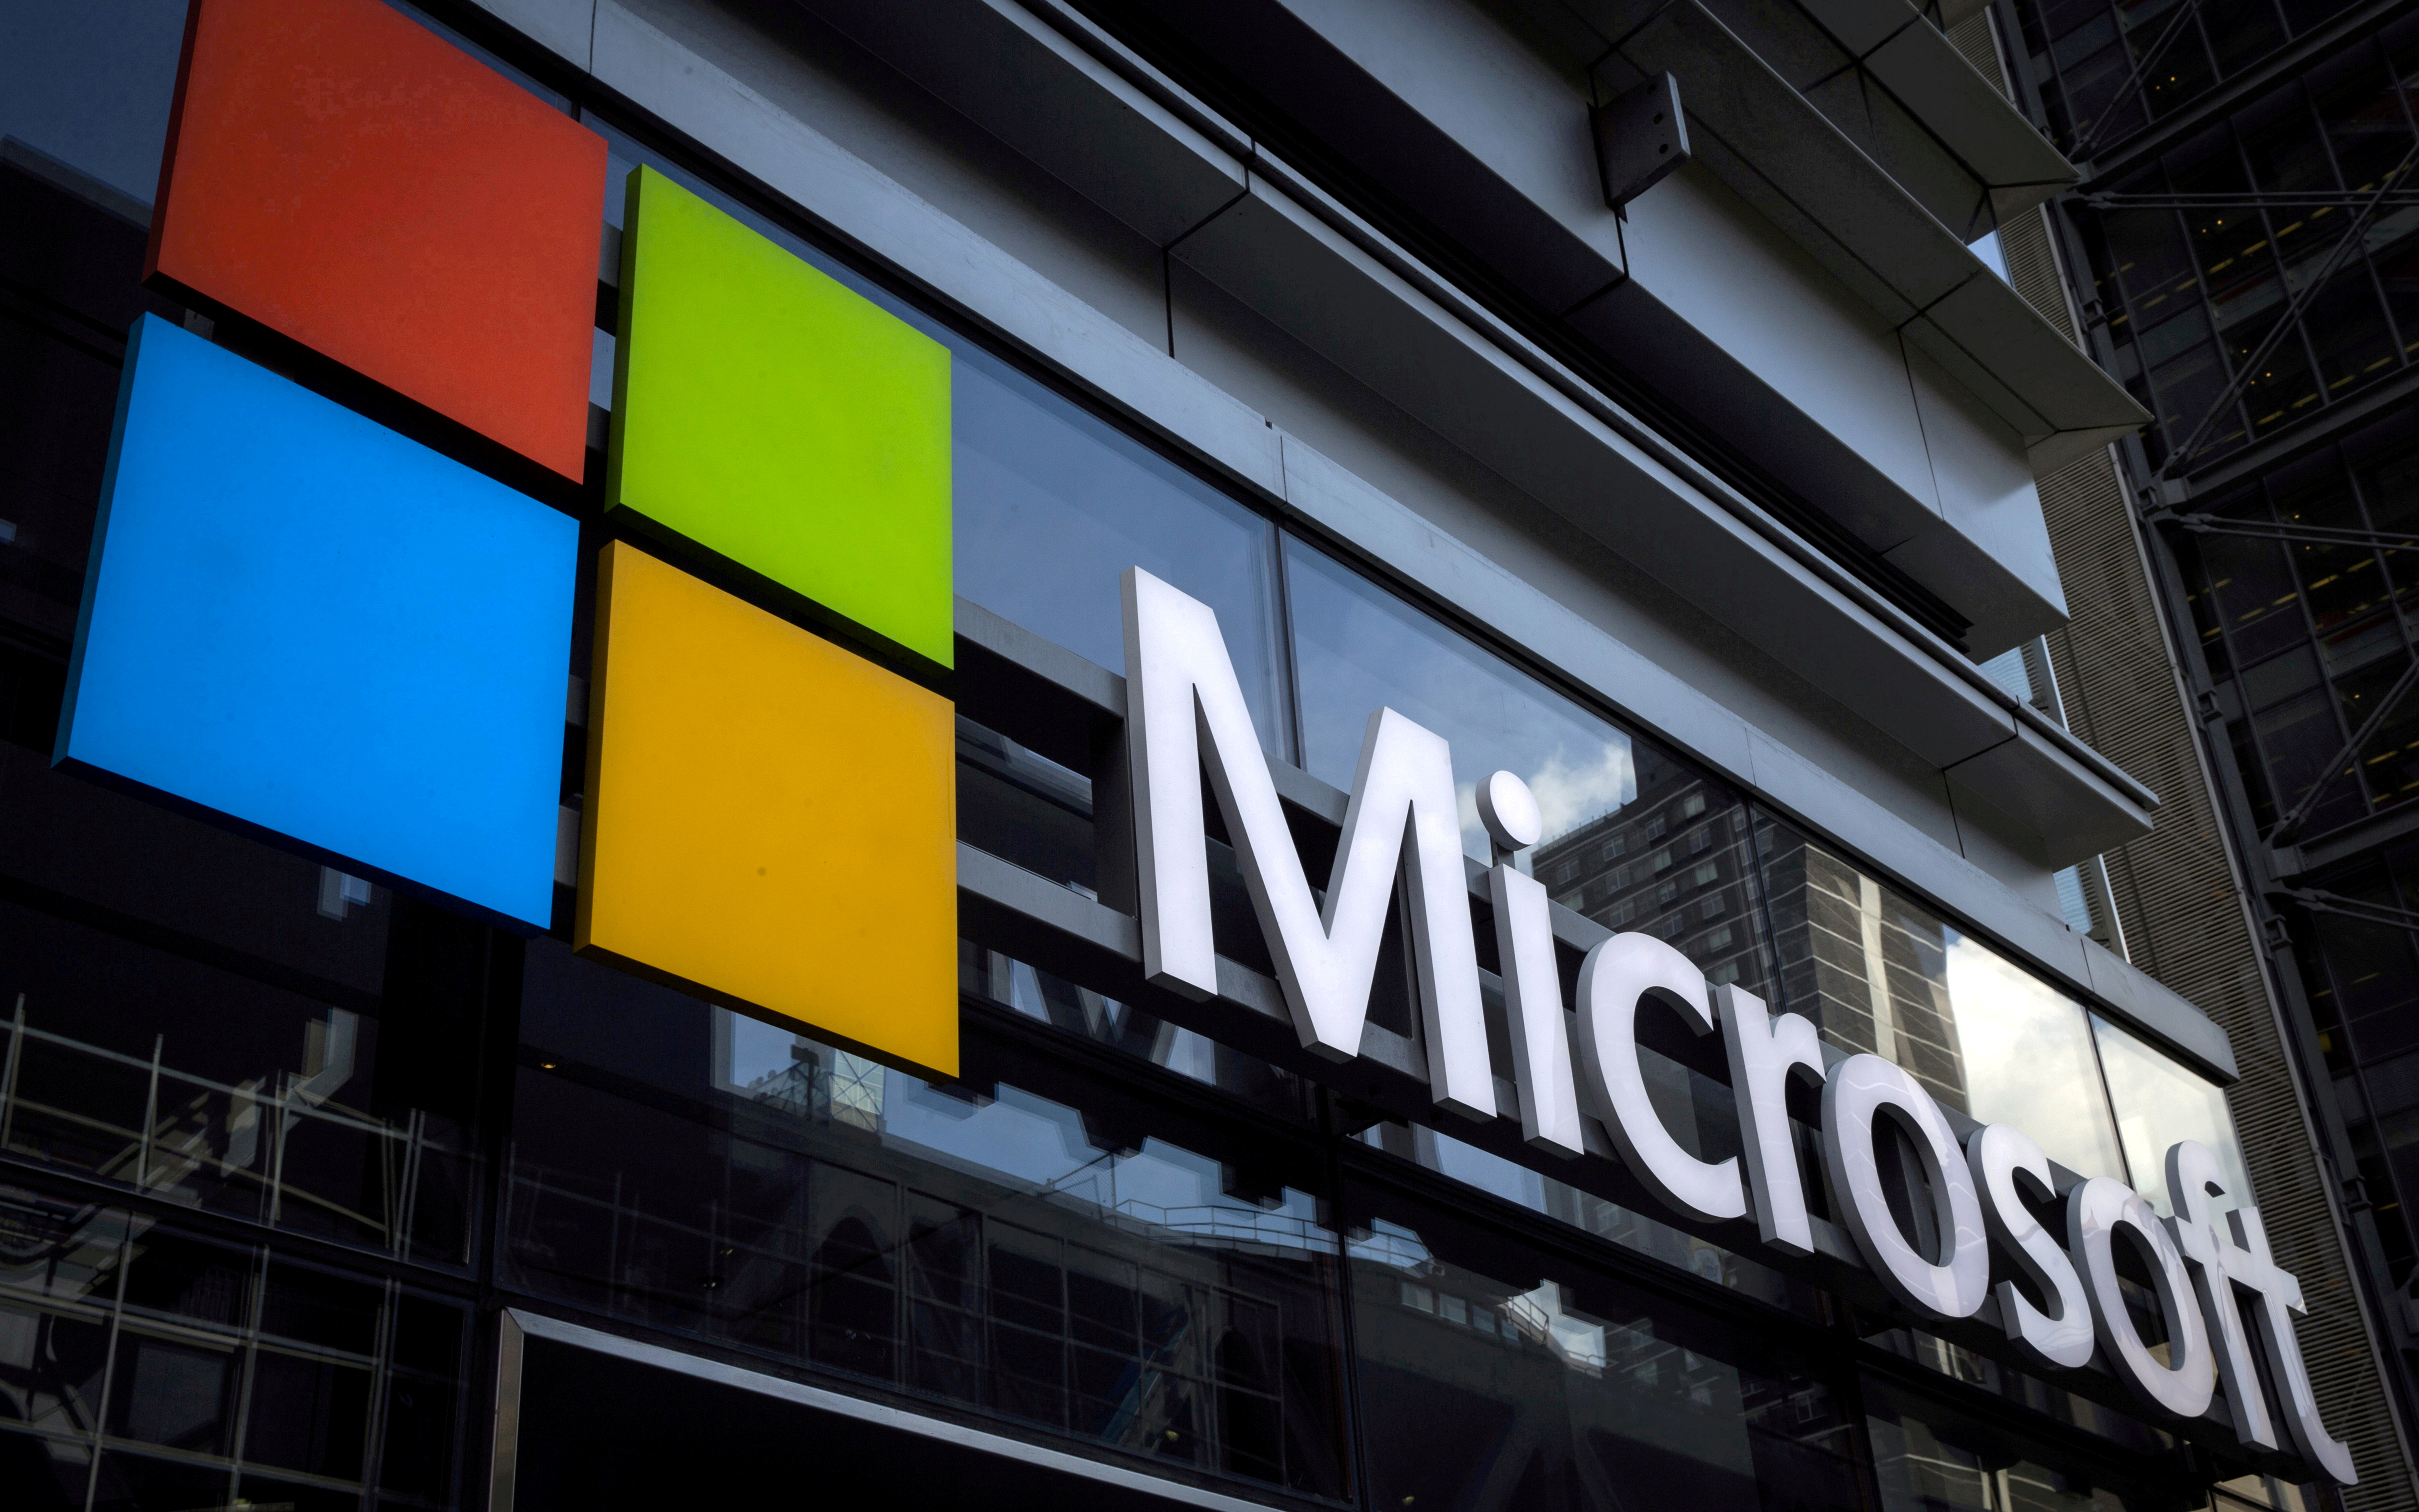 A Microsoft logo is seen on an office building in New York City, U.S. on July 28, 2015. REUTERS/Mike Segar/File Photo